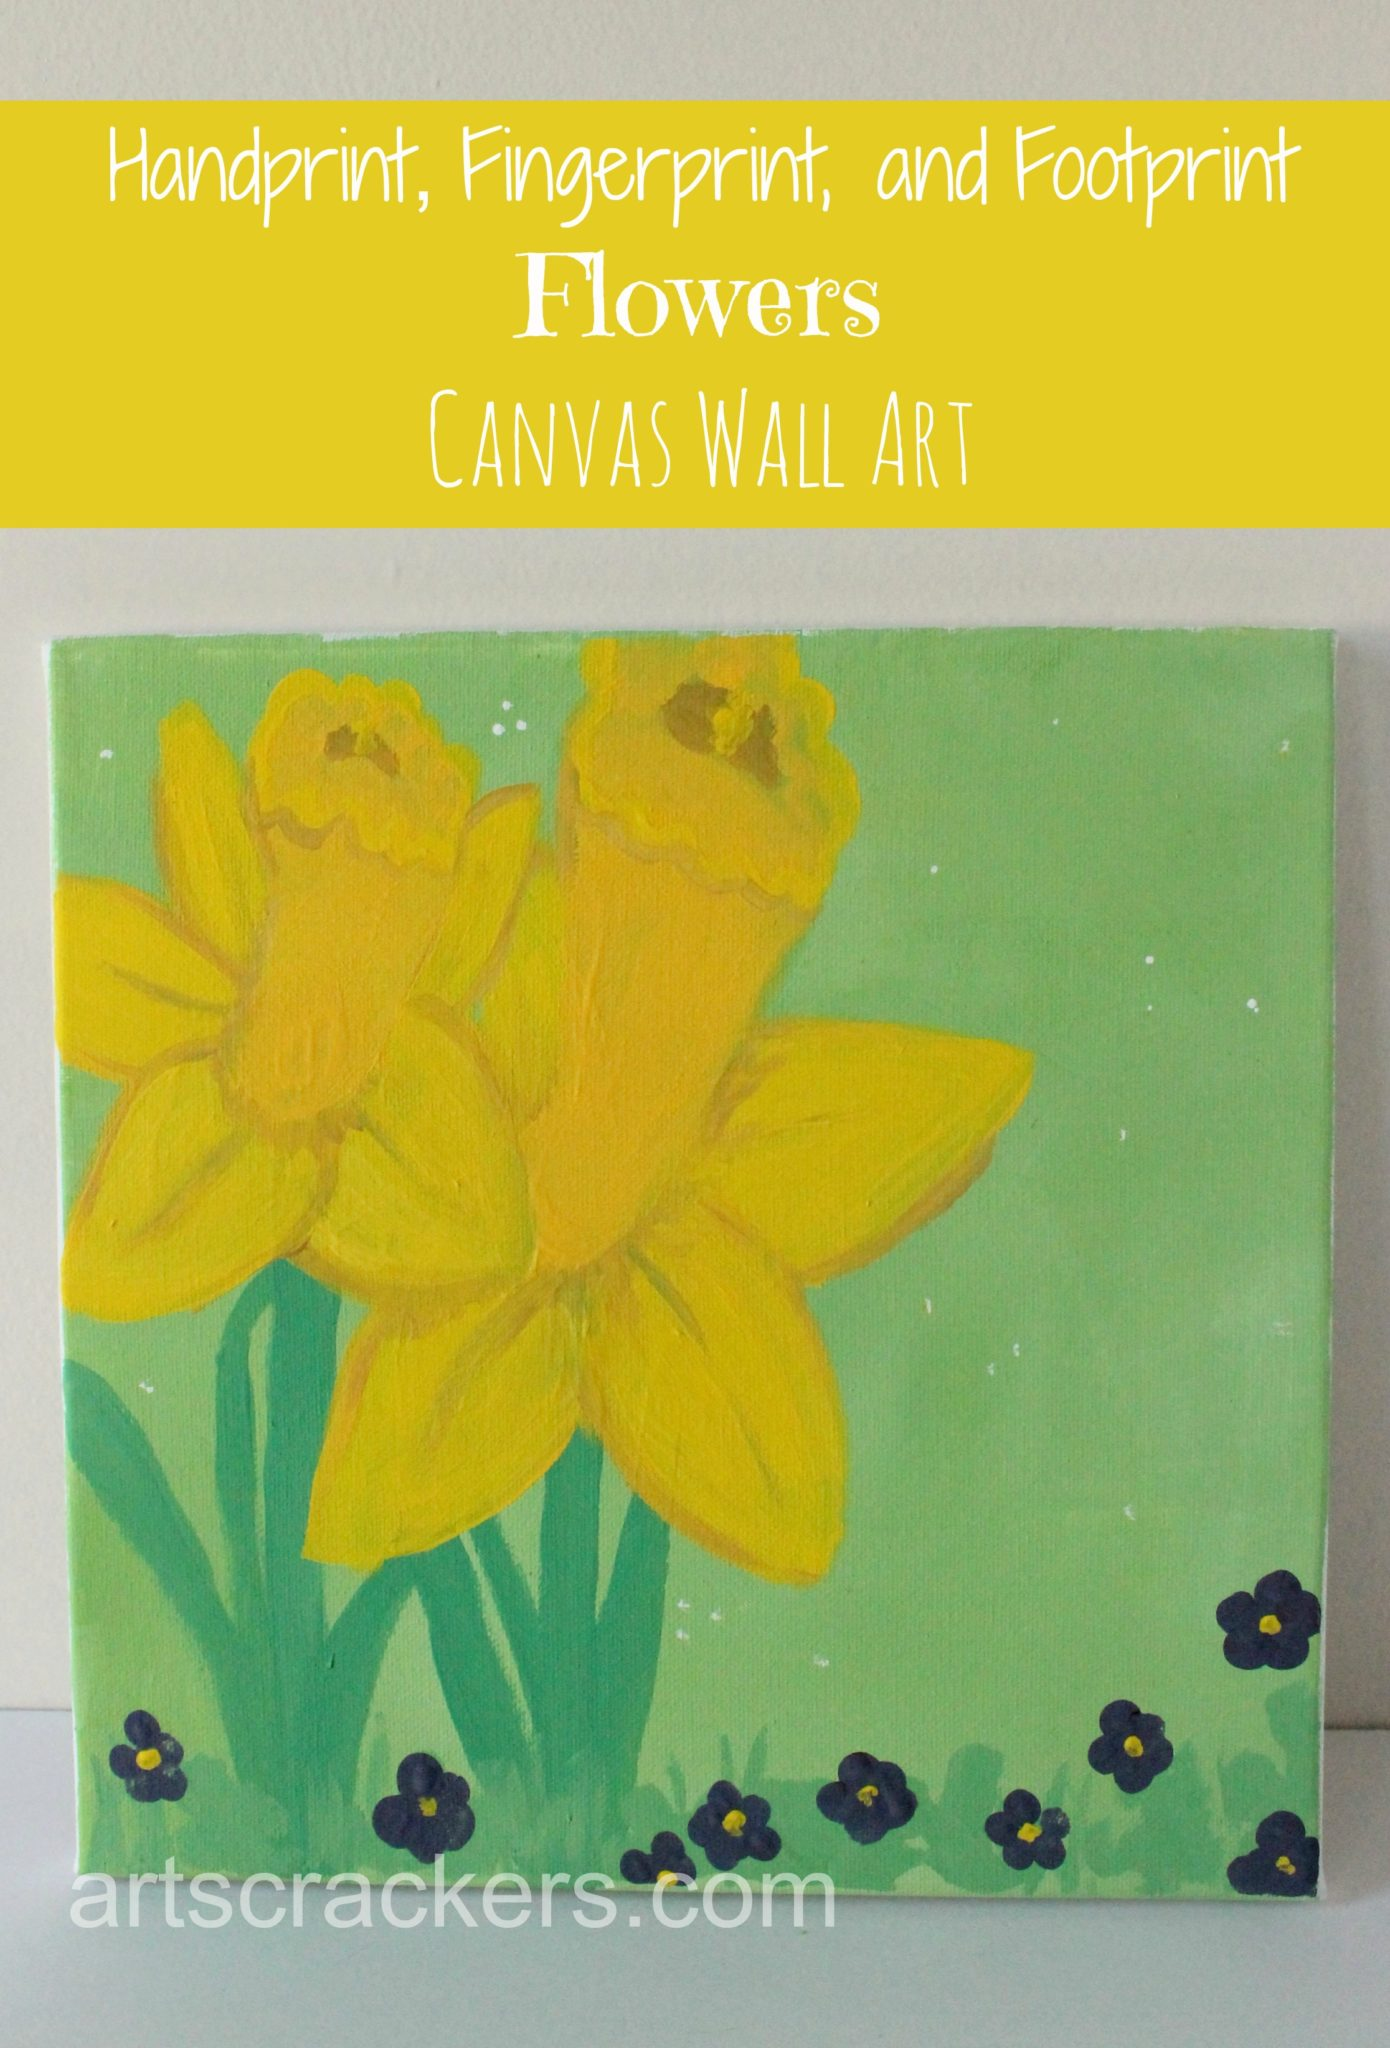 Handprint, Footprint, and Fingerprint Flowers Canvas Wall Art